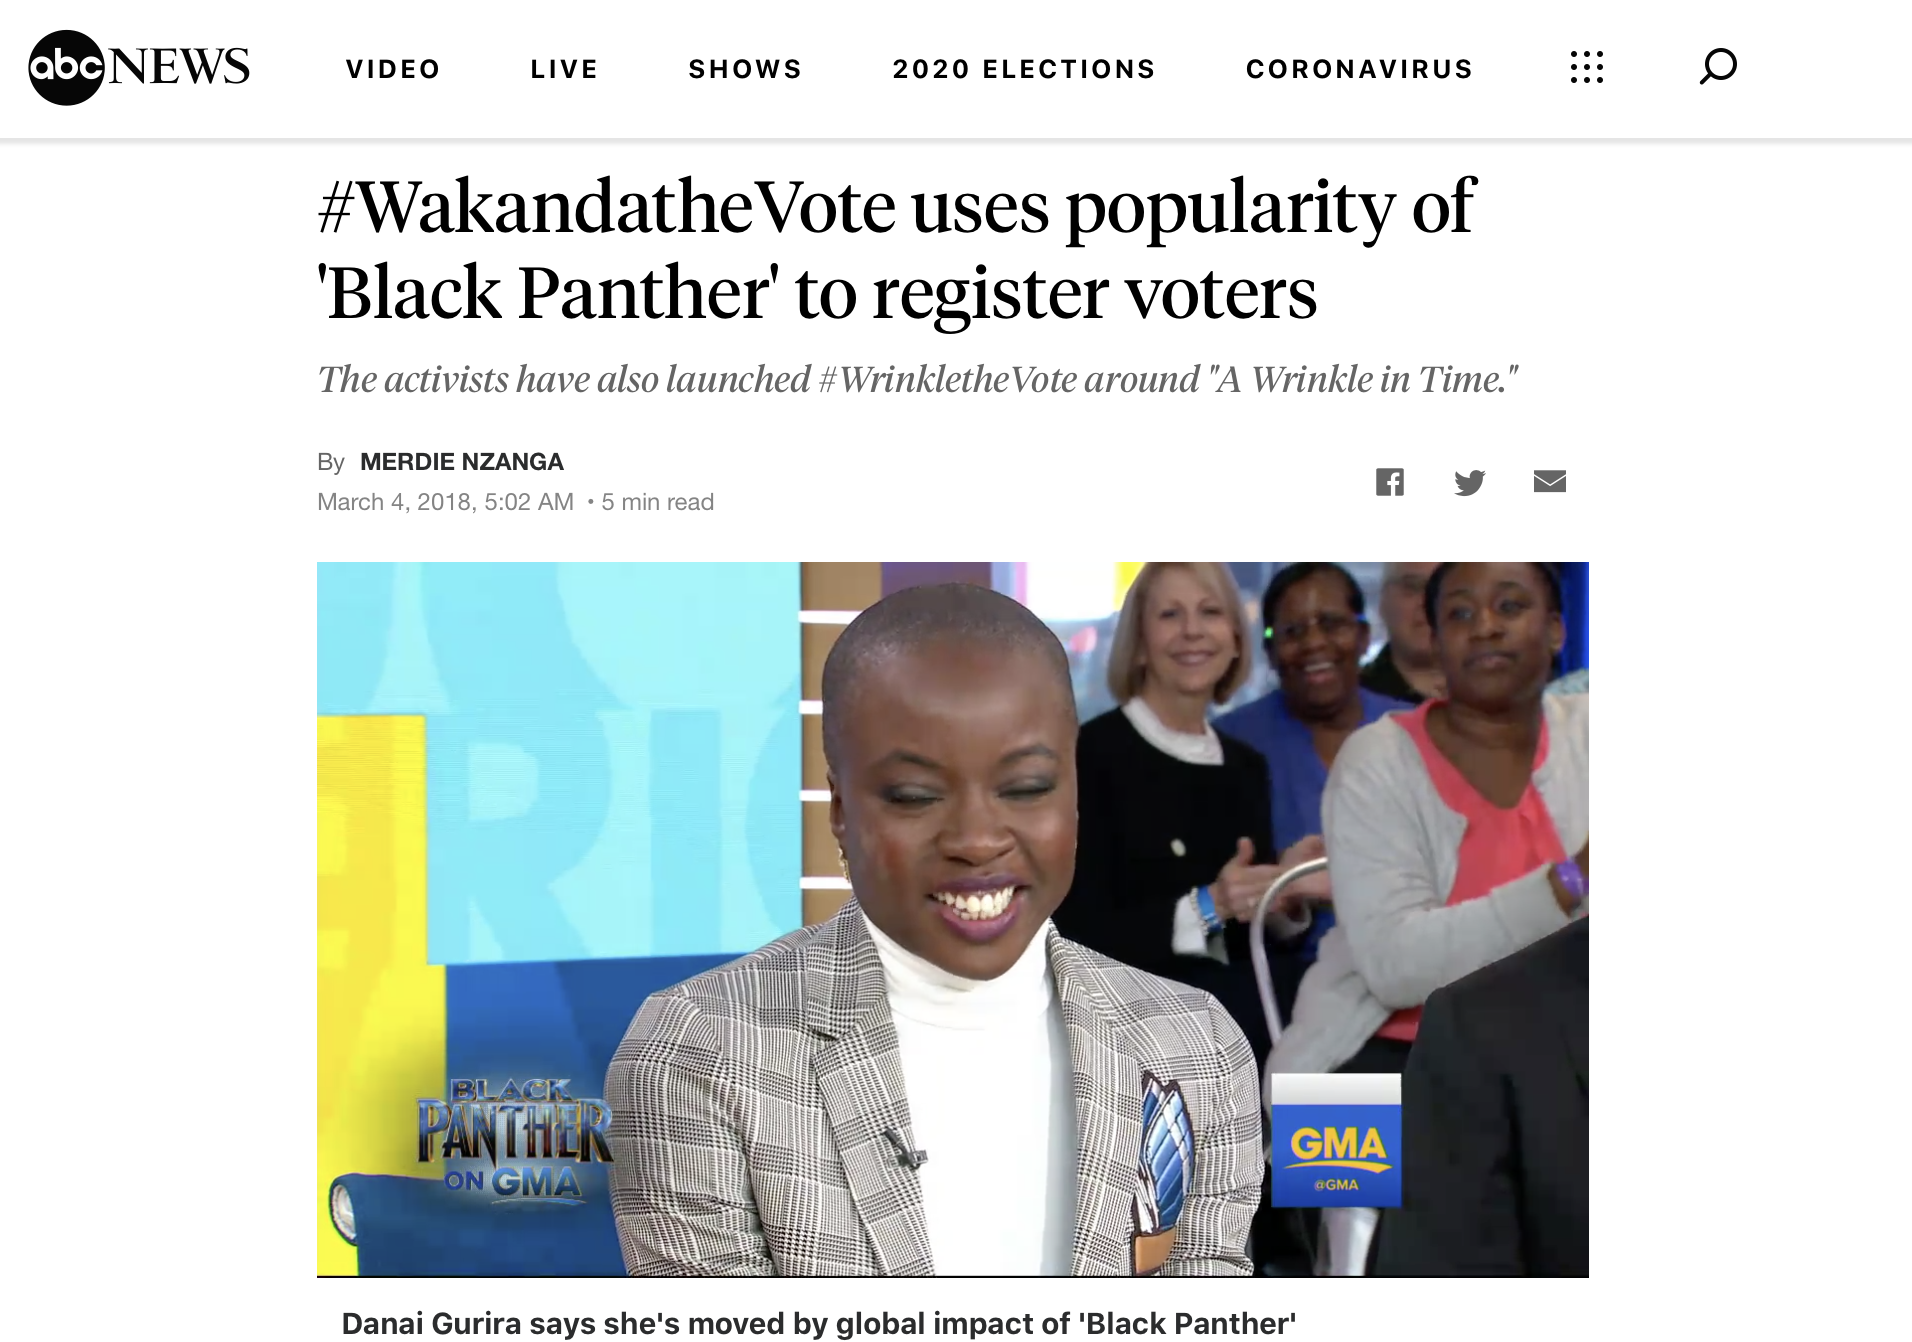 #WakandatheVote uses popularity of 'Black Panther' to register voters